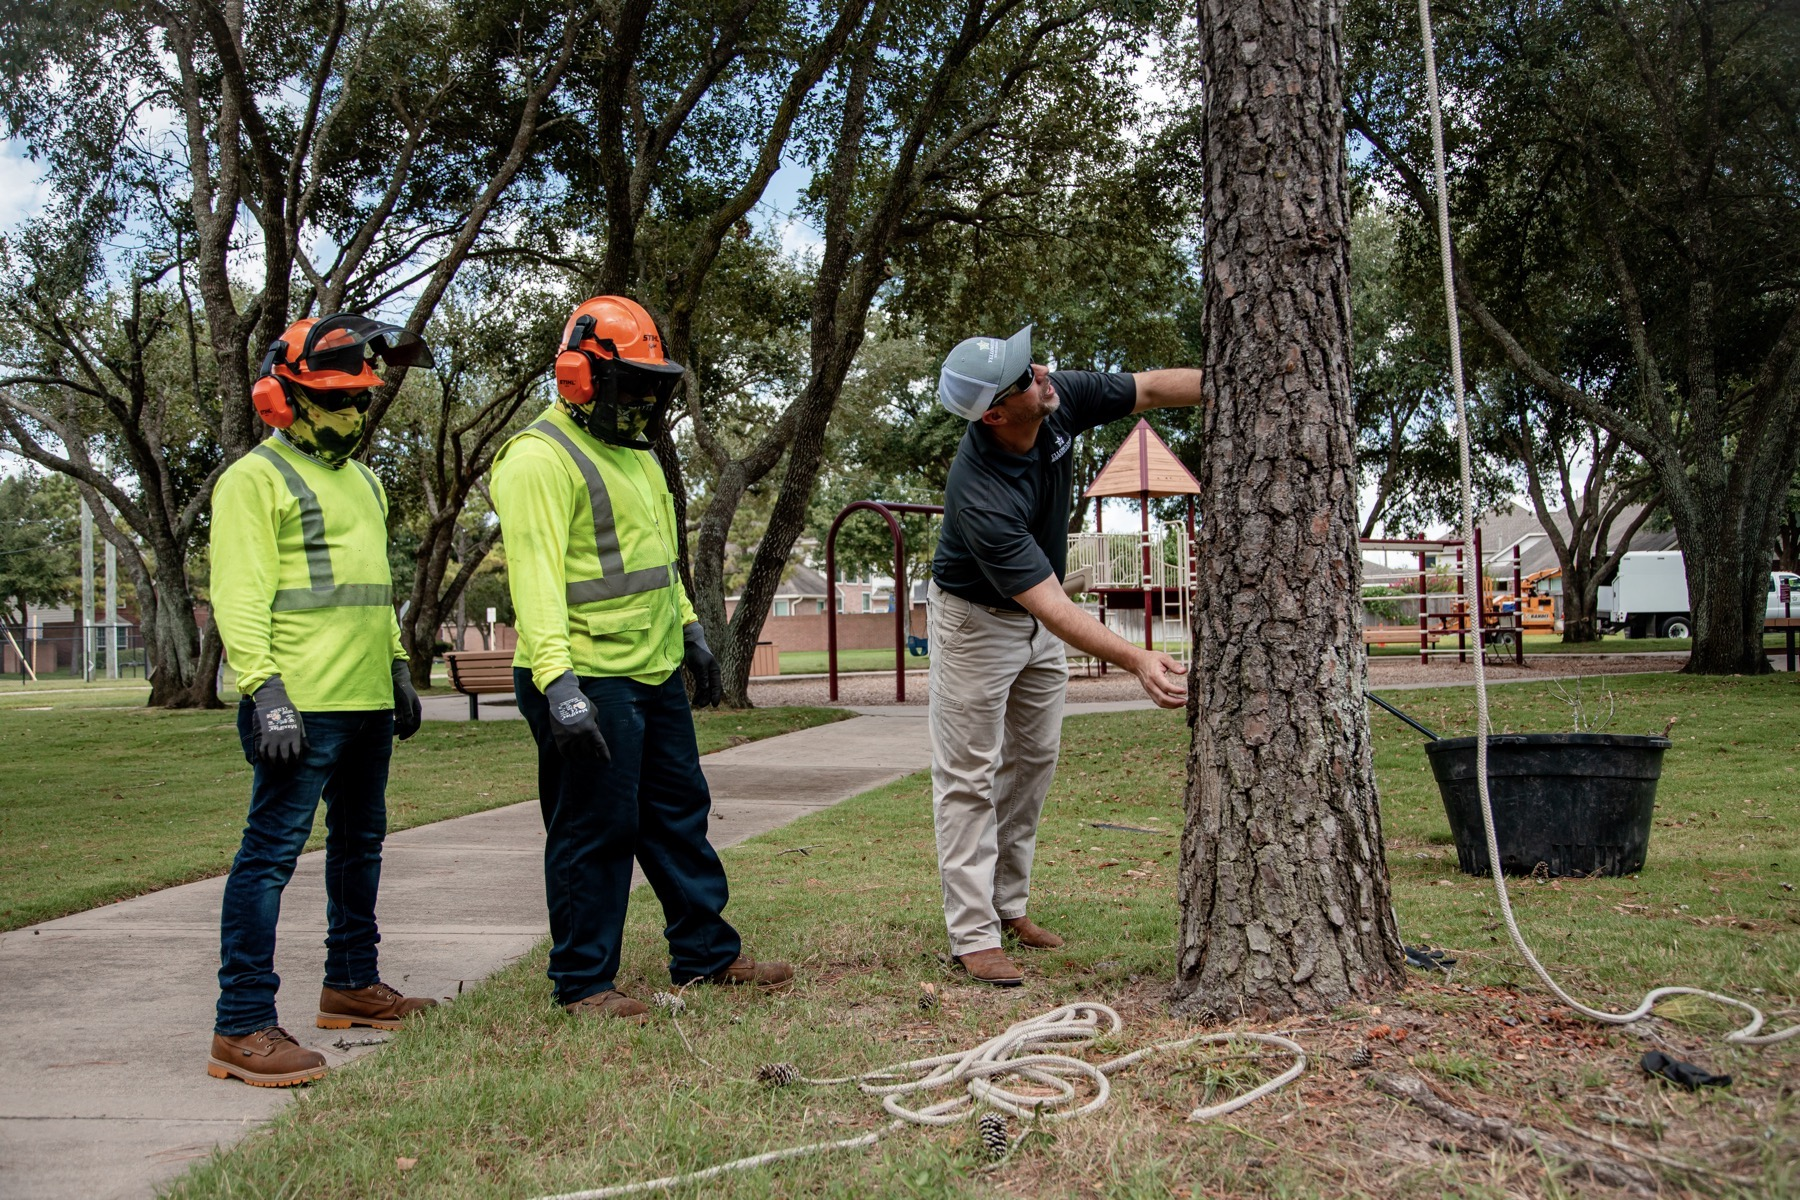 Tree service crew prepping for a job